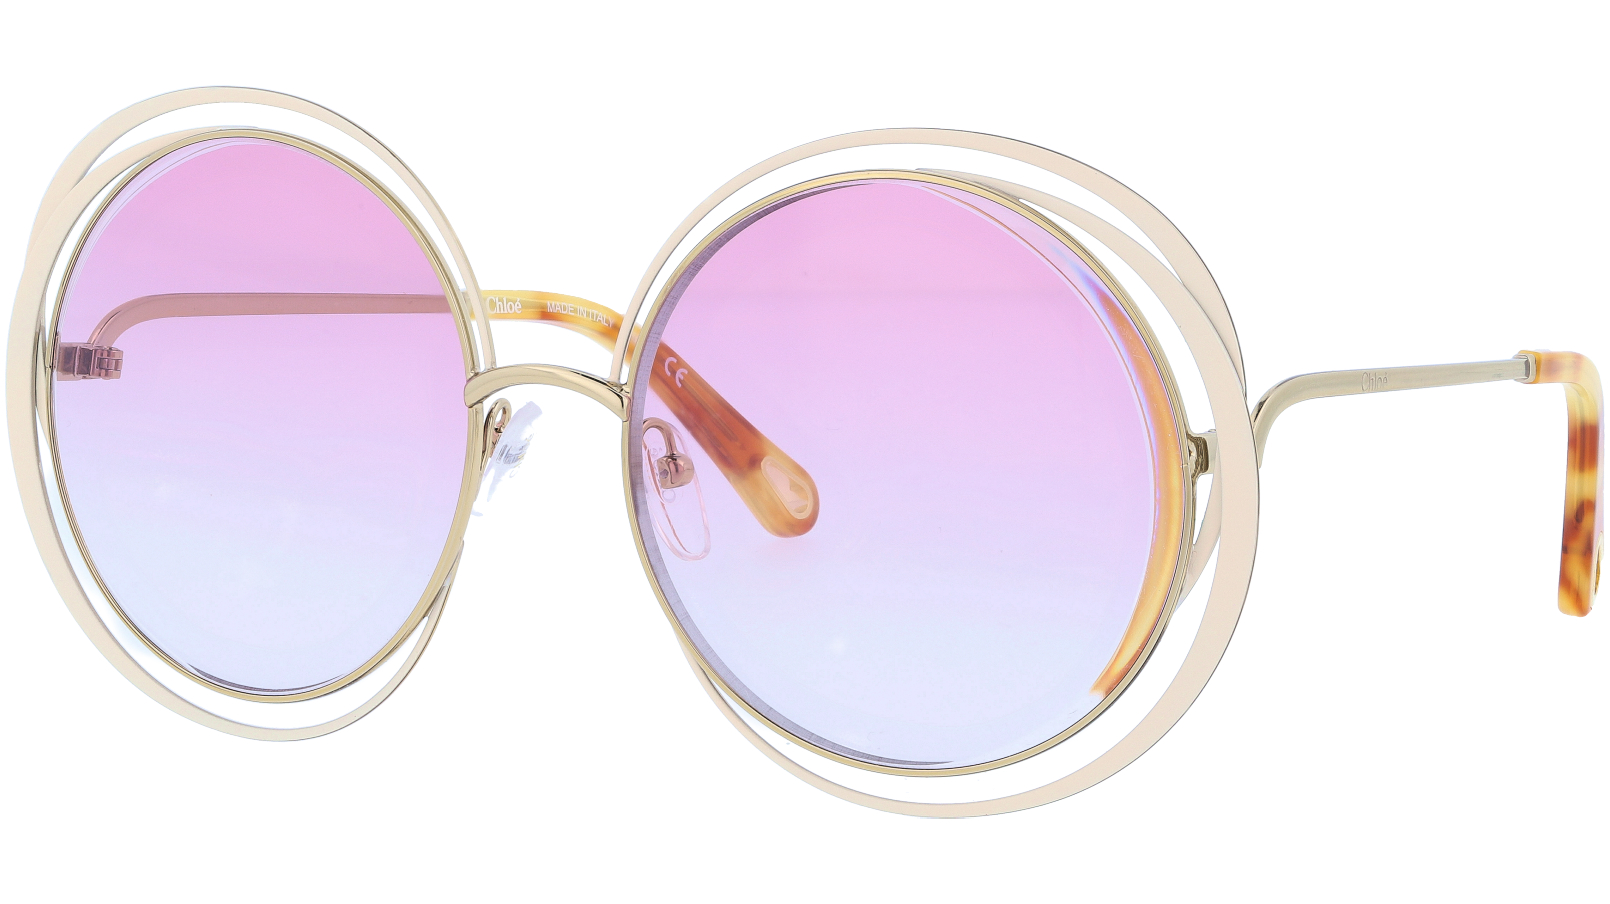 CHLOE CE155S 795 59 Gold Ivory Carlina Round Sunglasses